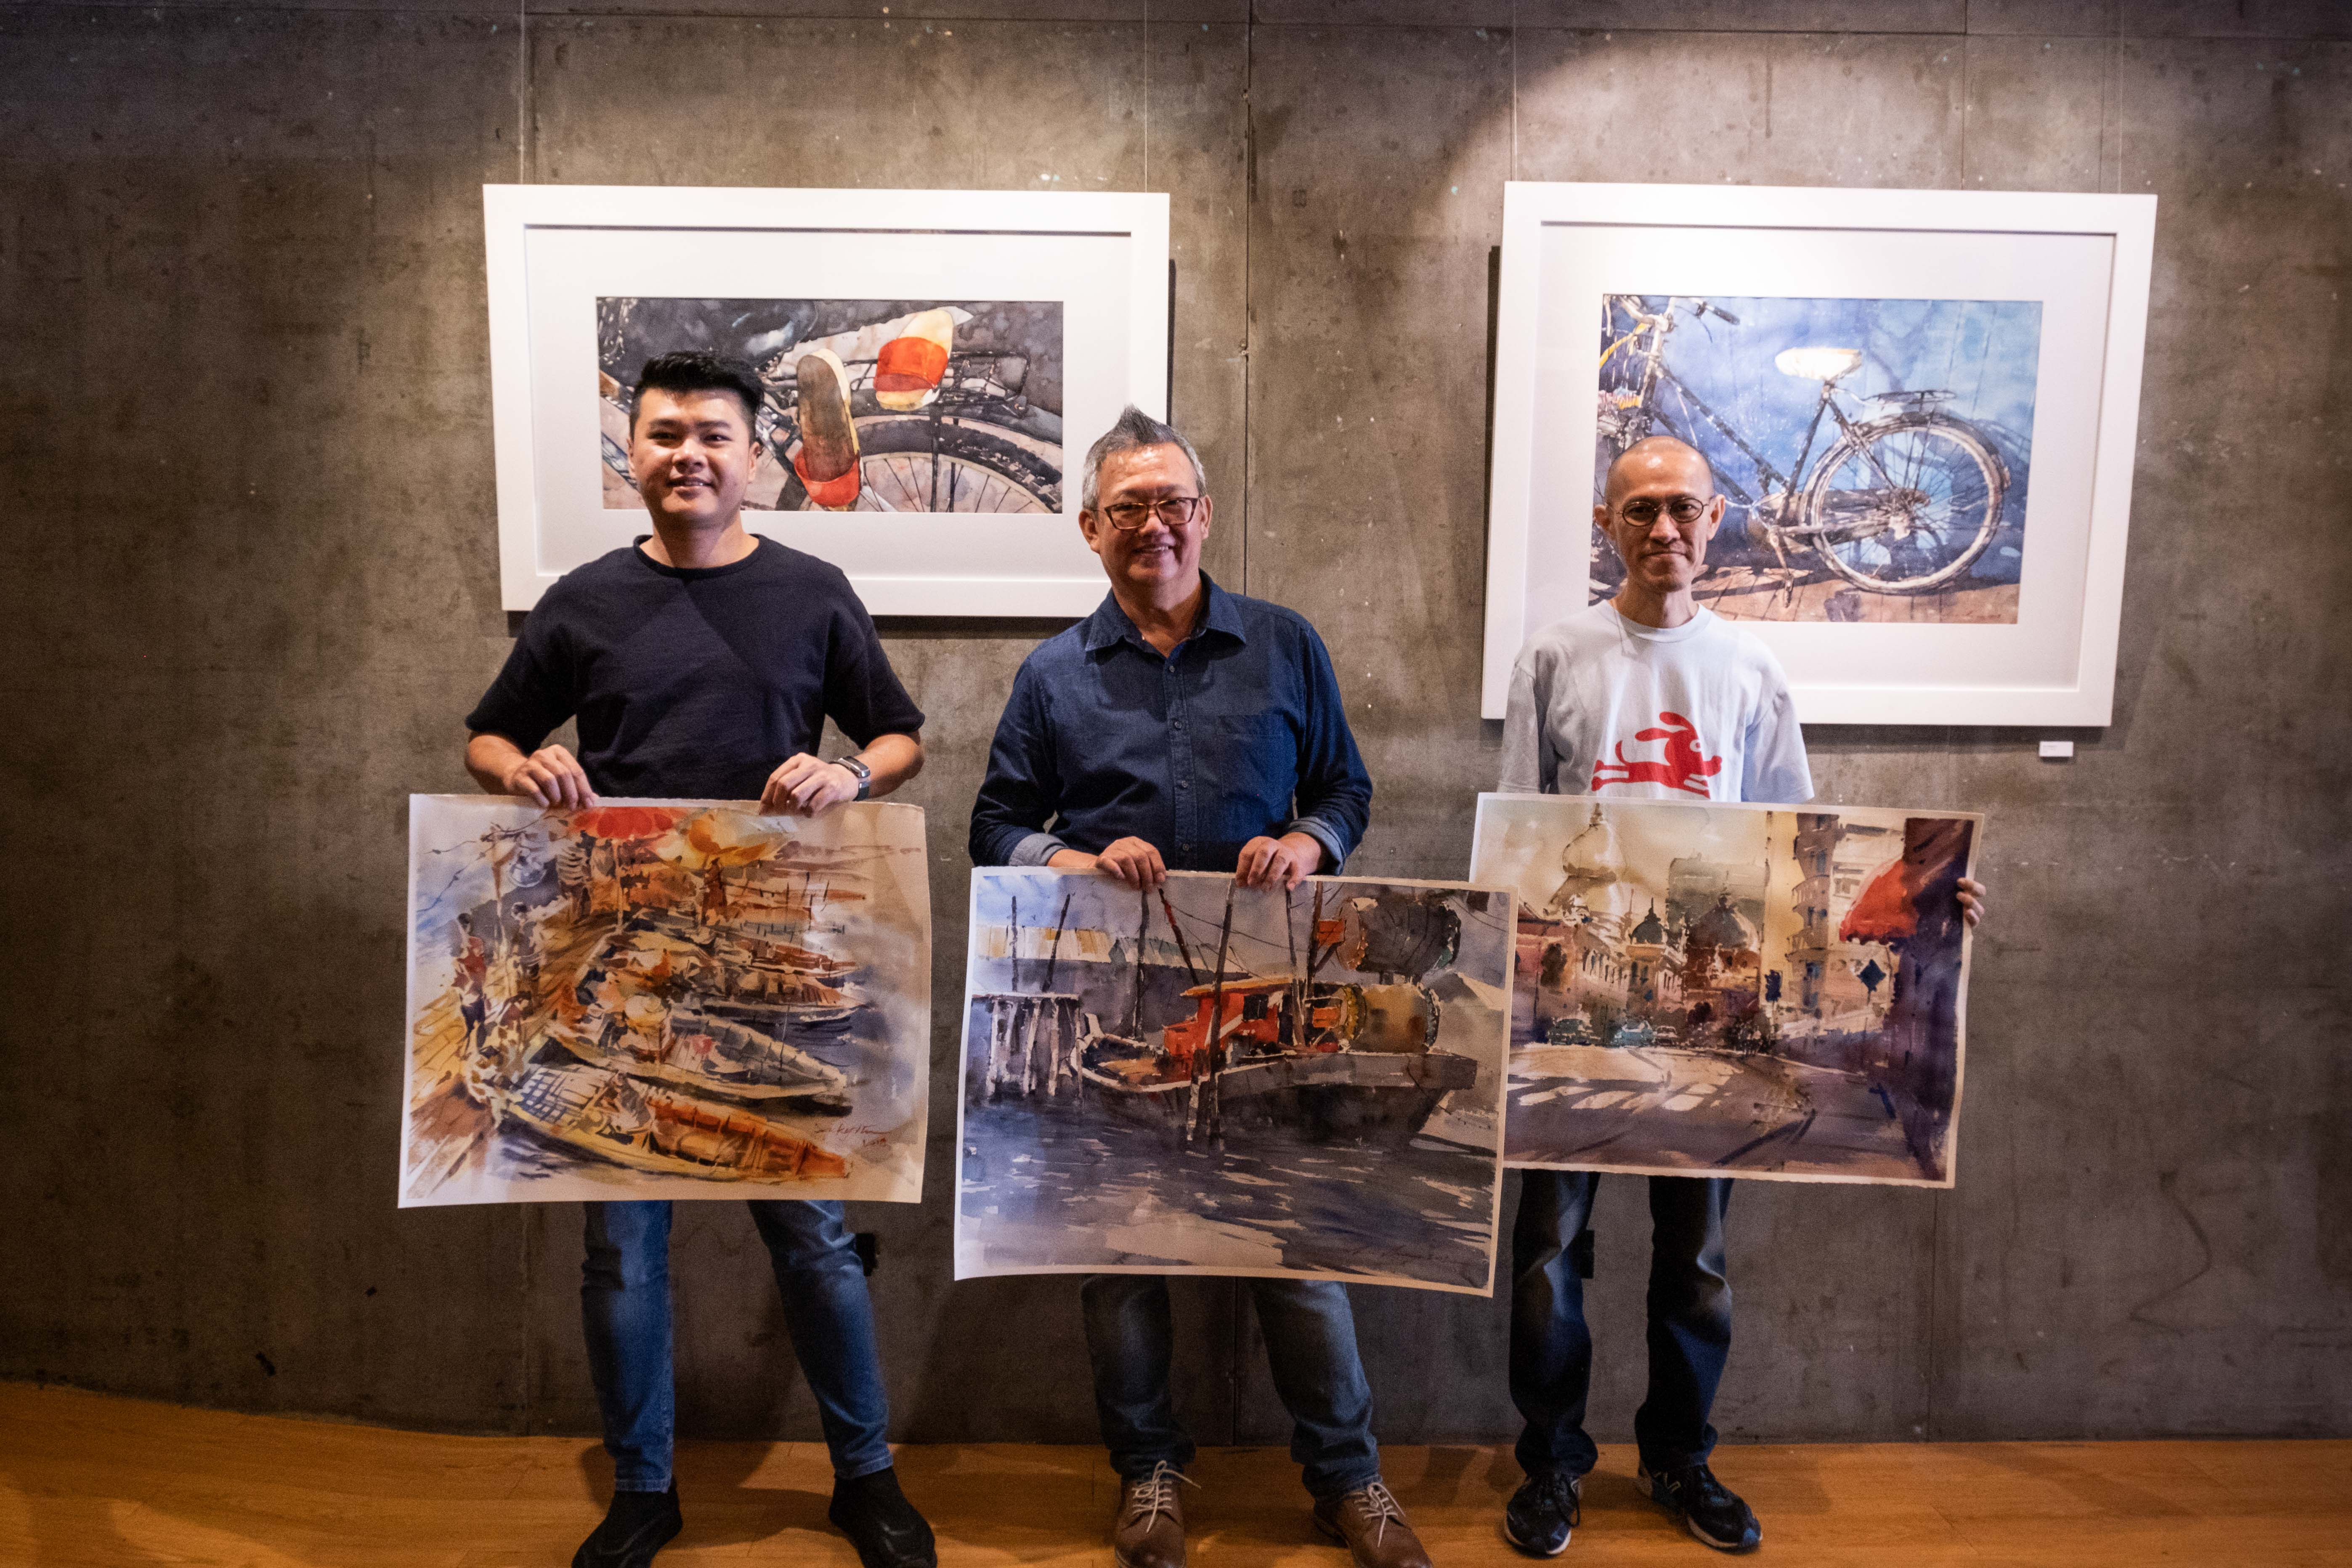 Jacky Chin, Chow Chin Chuan and T'ang Mung Kian posing with their completed artwork